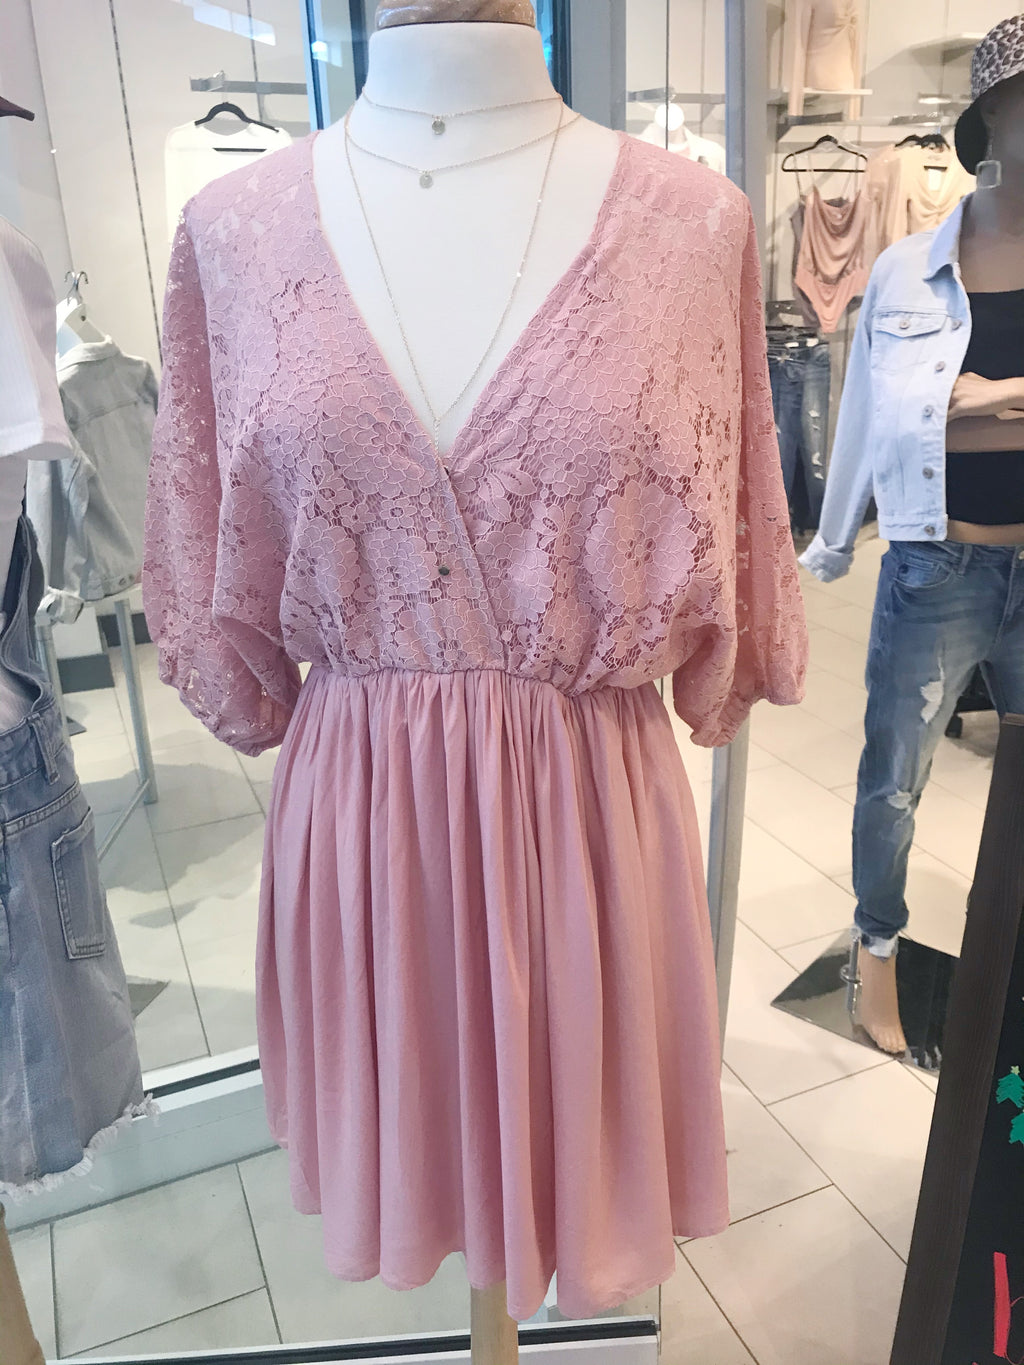 LACE TOP WOVEN DRESS WITH A TIE AT THE BACK